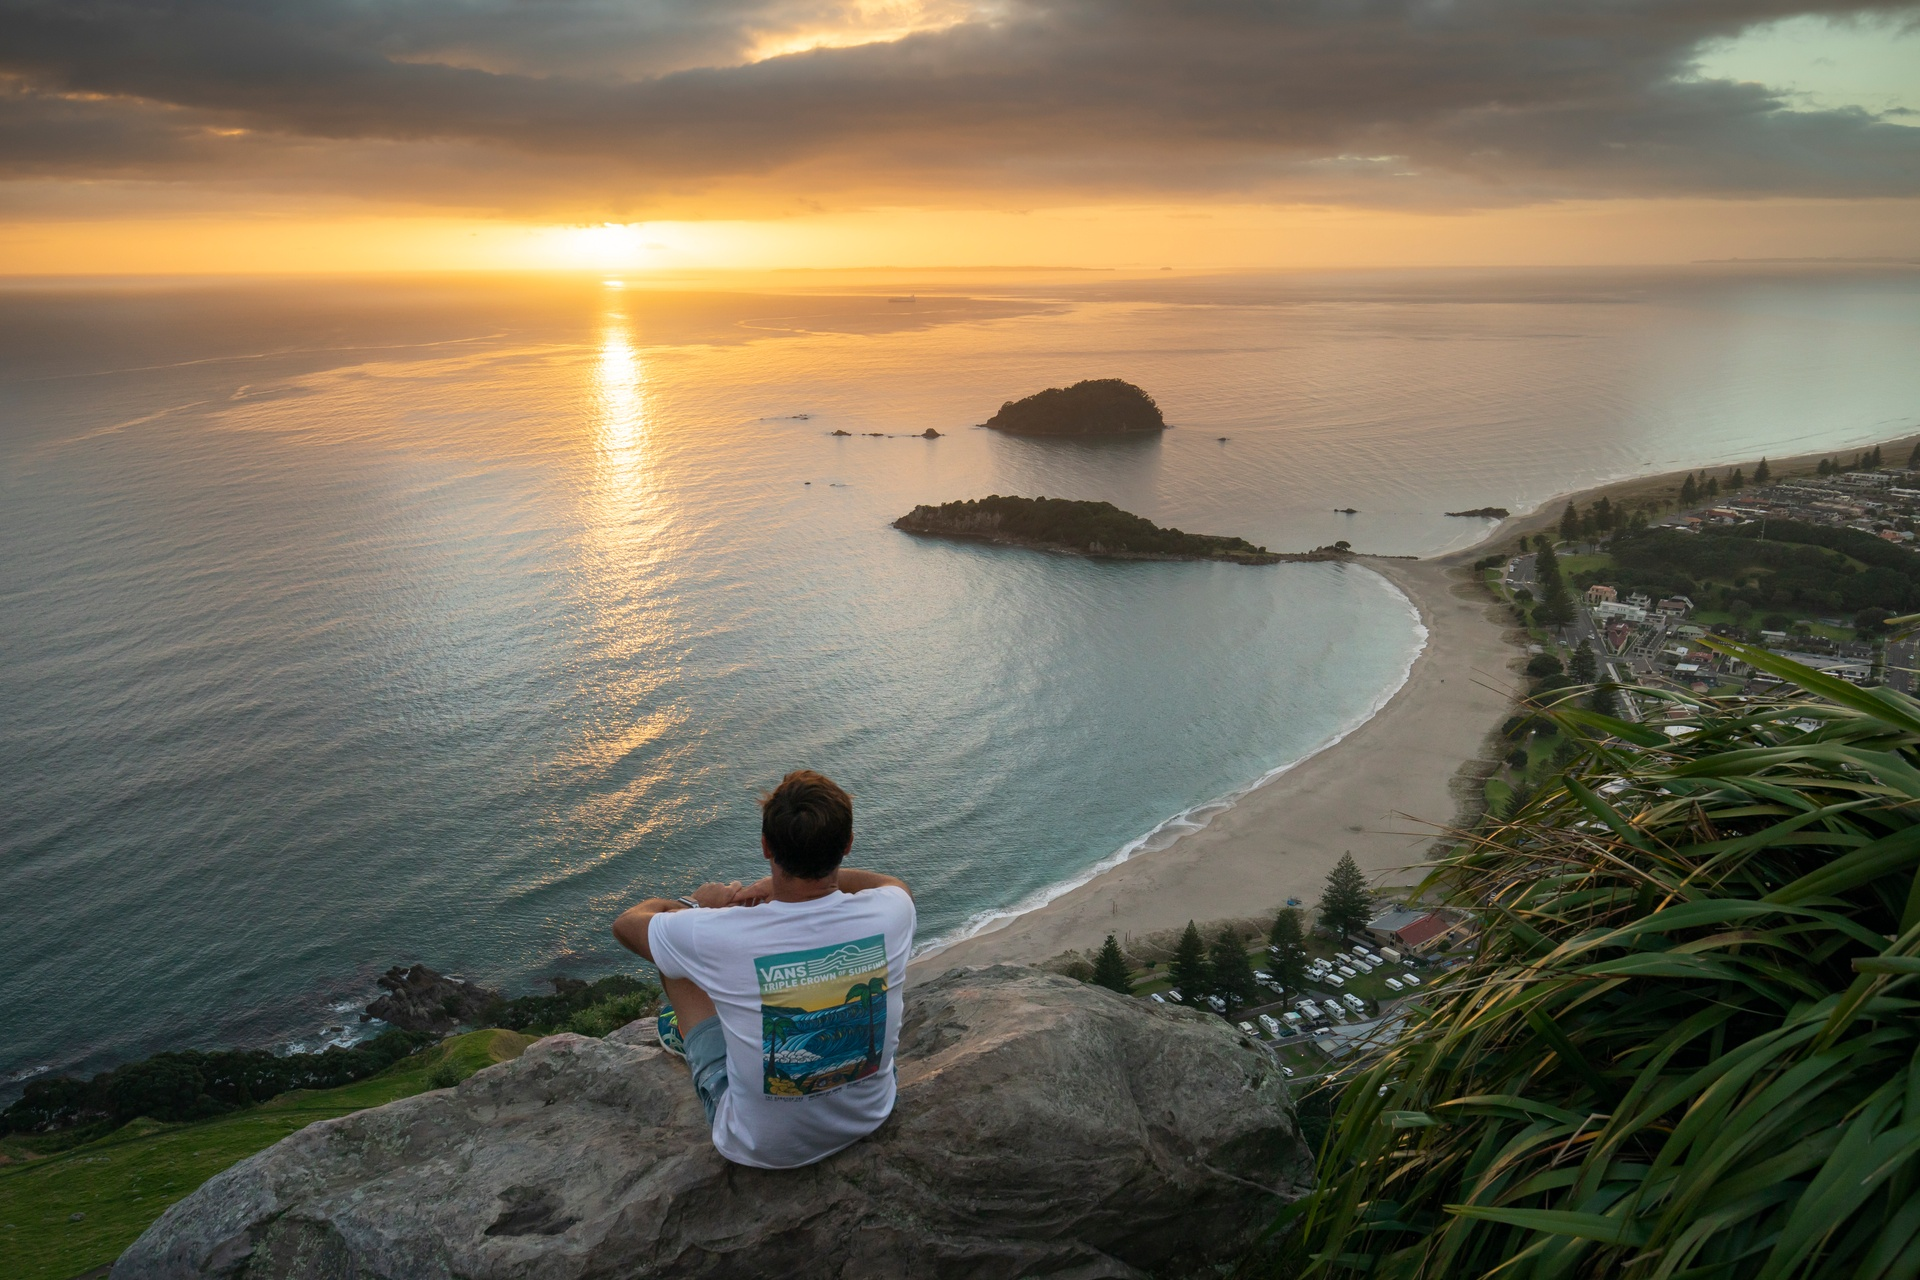 20-Mount-Maunganui-Bay-of-Plenty-Graeme-Murray.jpg